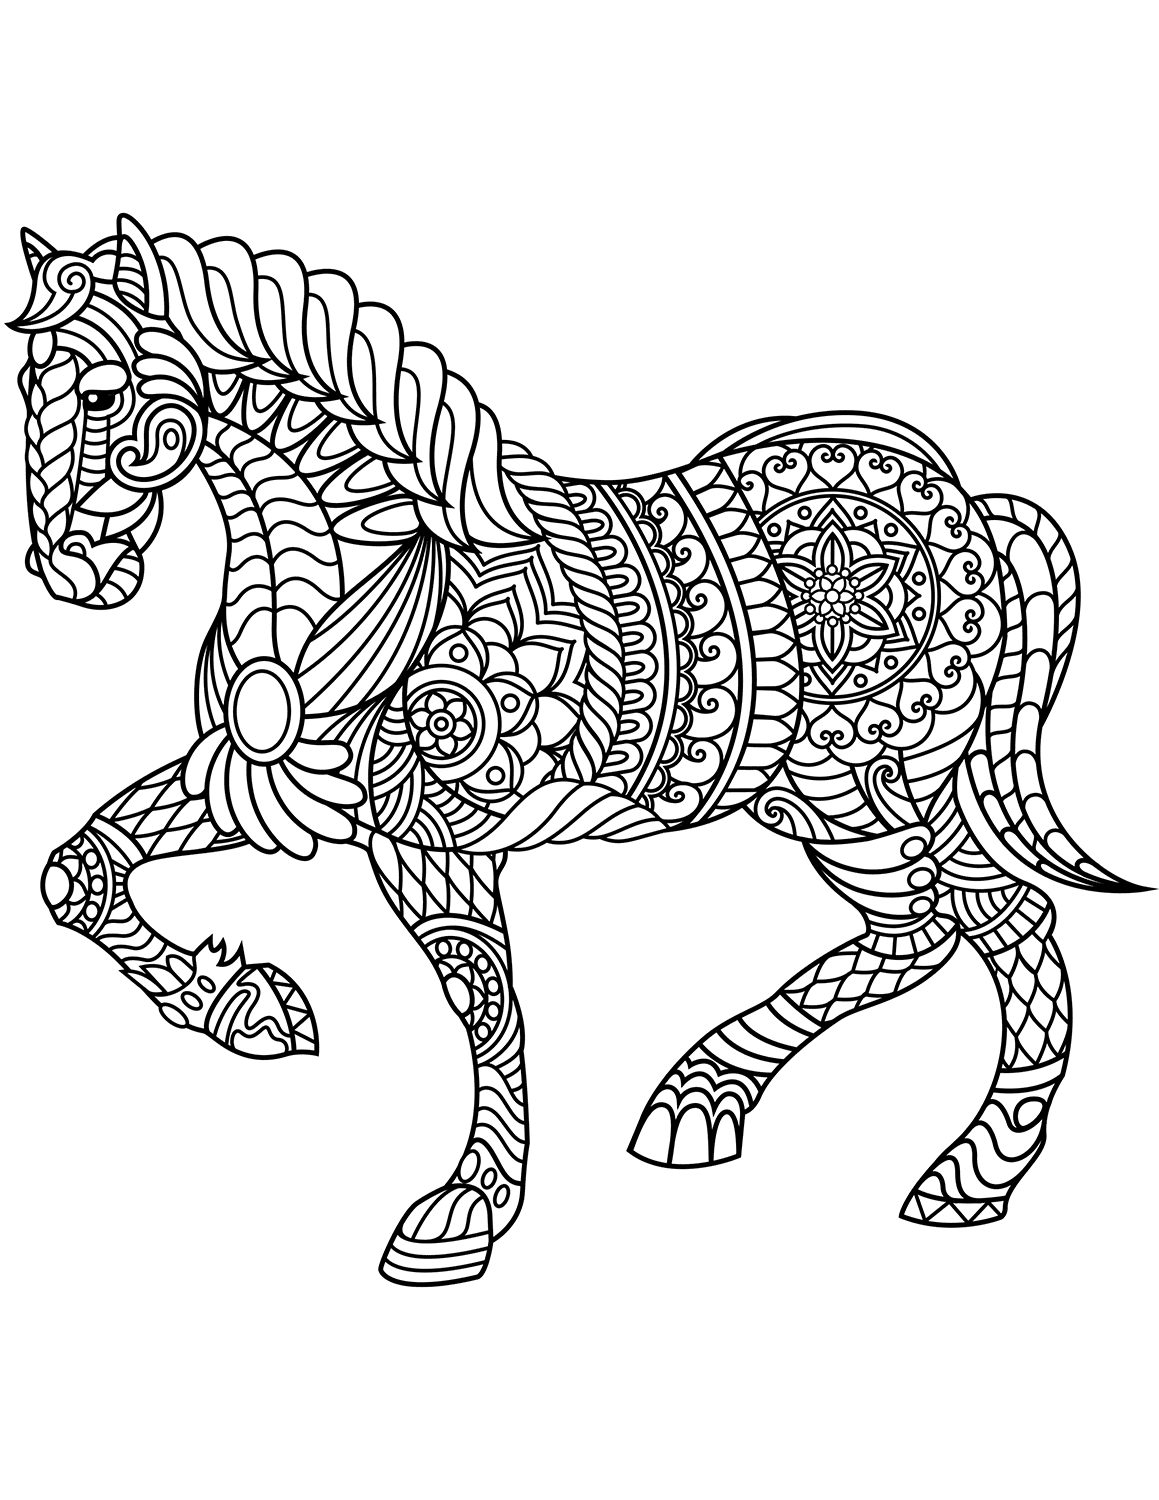 colouring horse free horse coloring pages for adults kids cowgirl magazine colouring horse